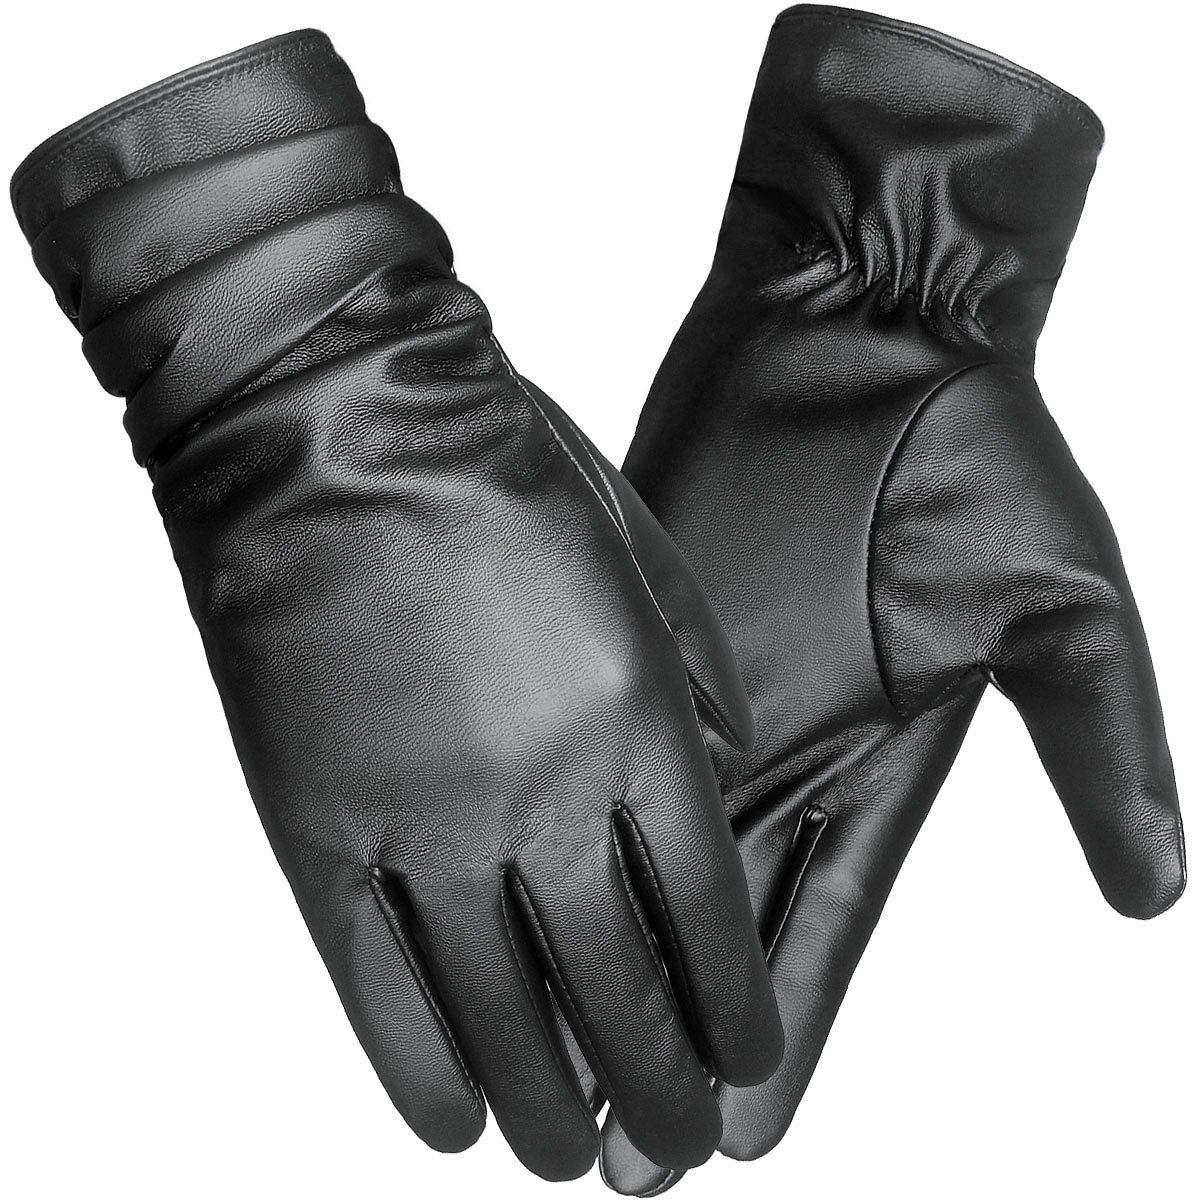 LETHMIK Winter Faux Leather Gloves Womens Driving Touchscreen Texting with Long Wrinkle Sleeves Black-L